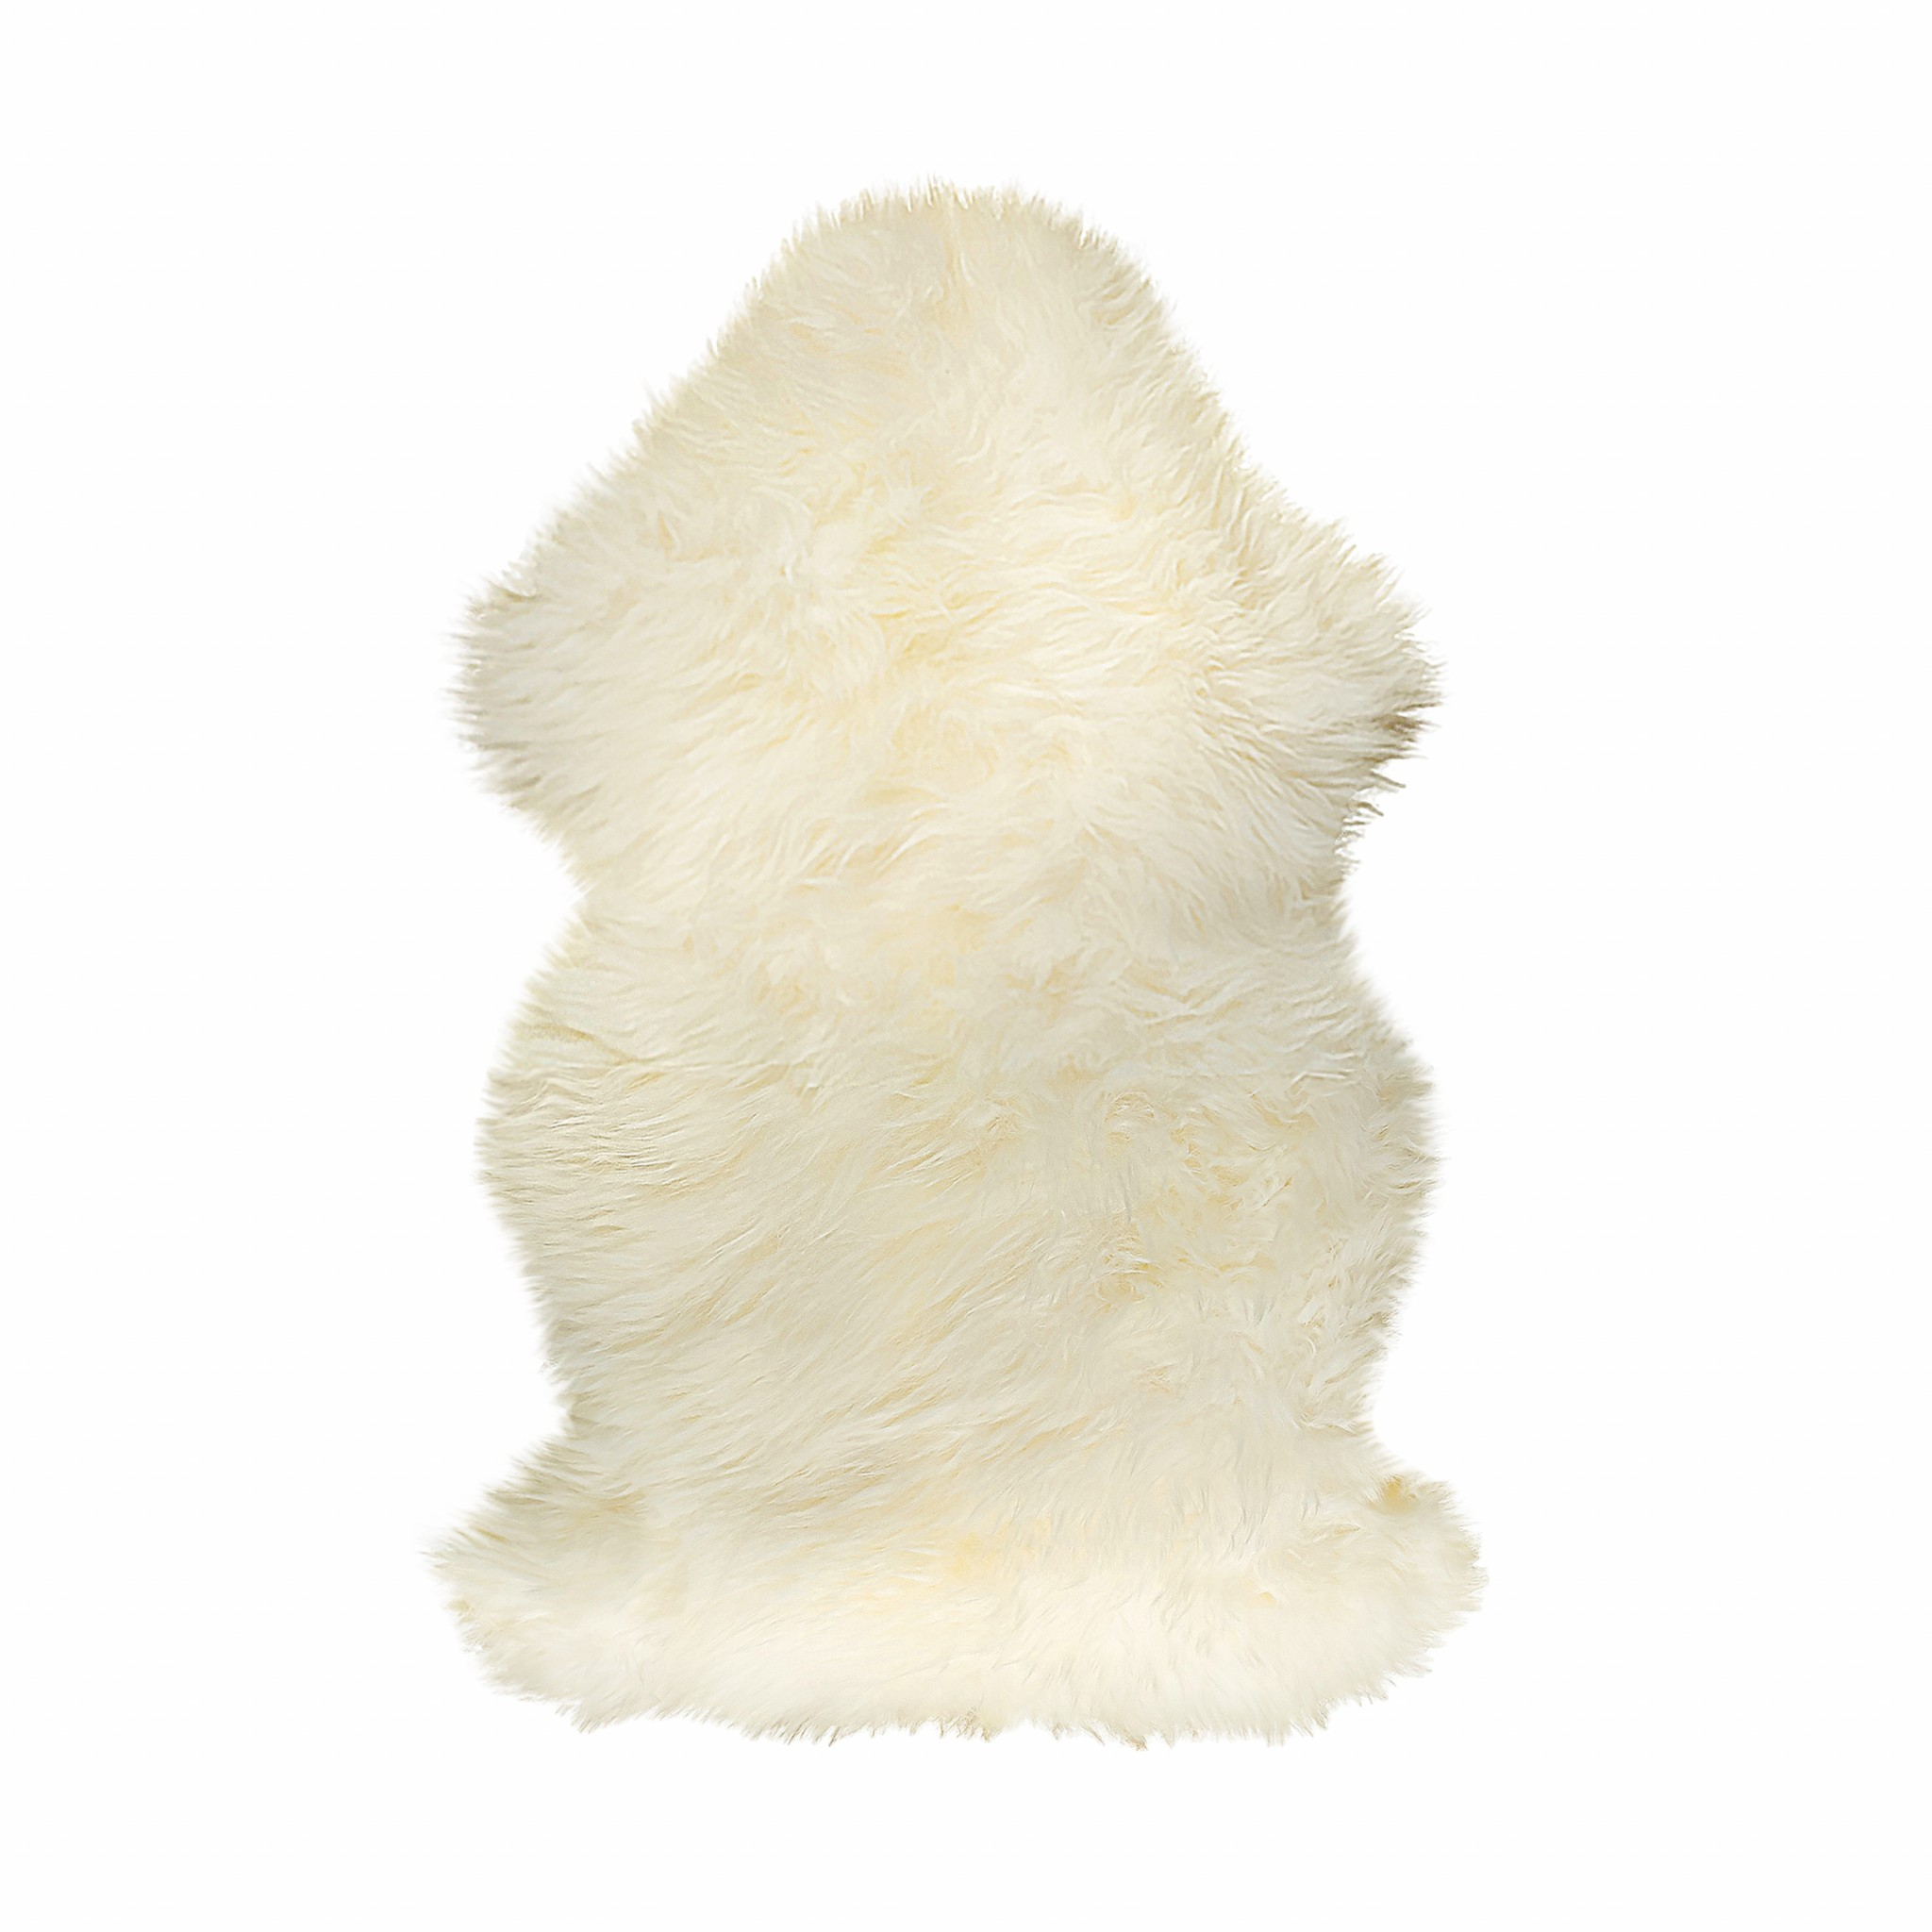 2' X 3' Natural Single Sheepskin Area Rug